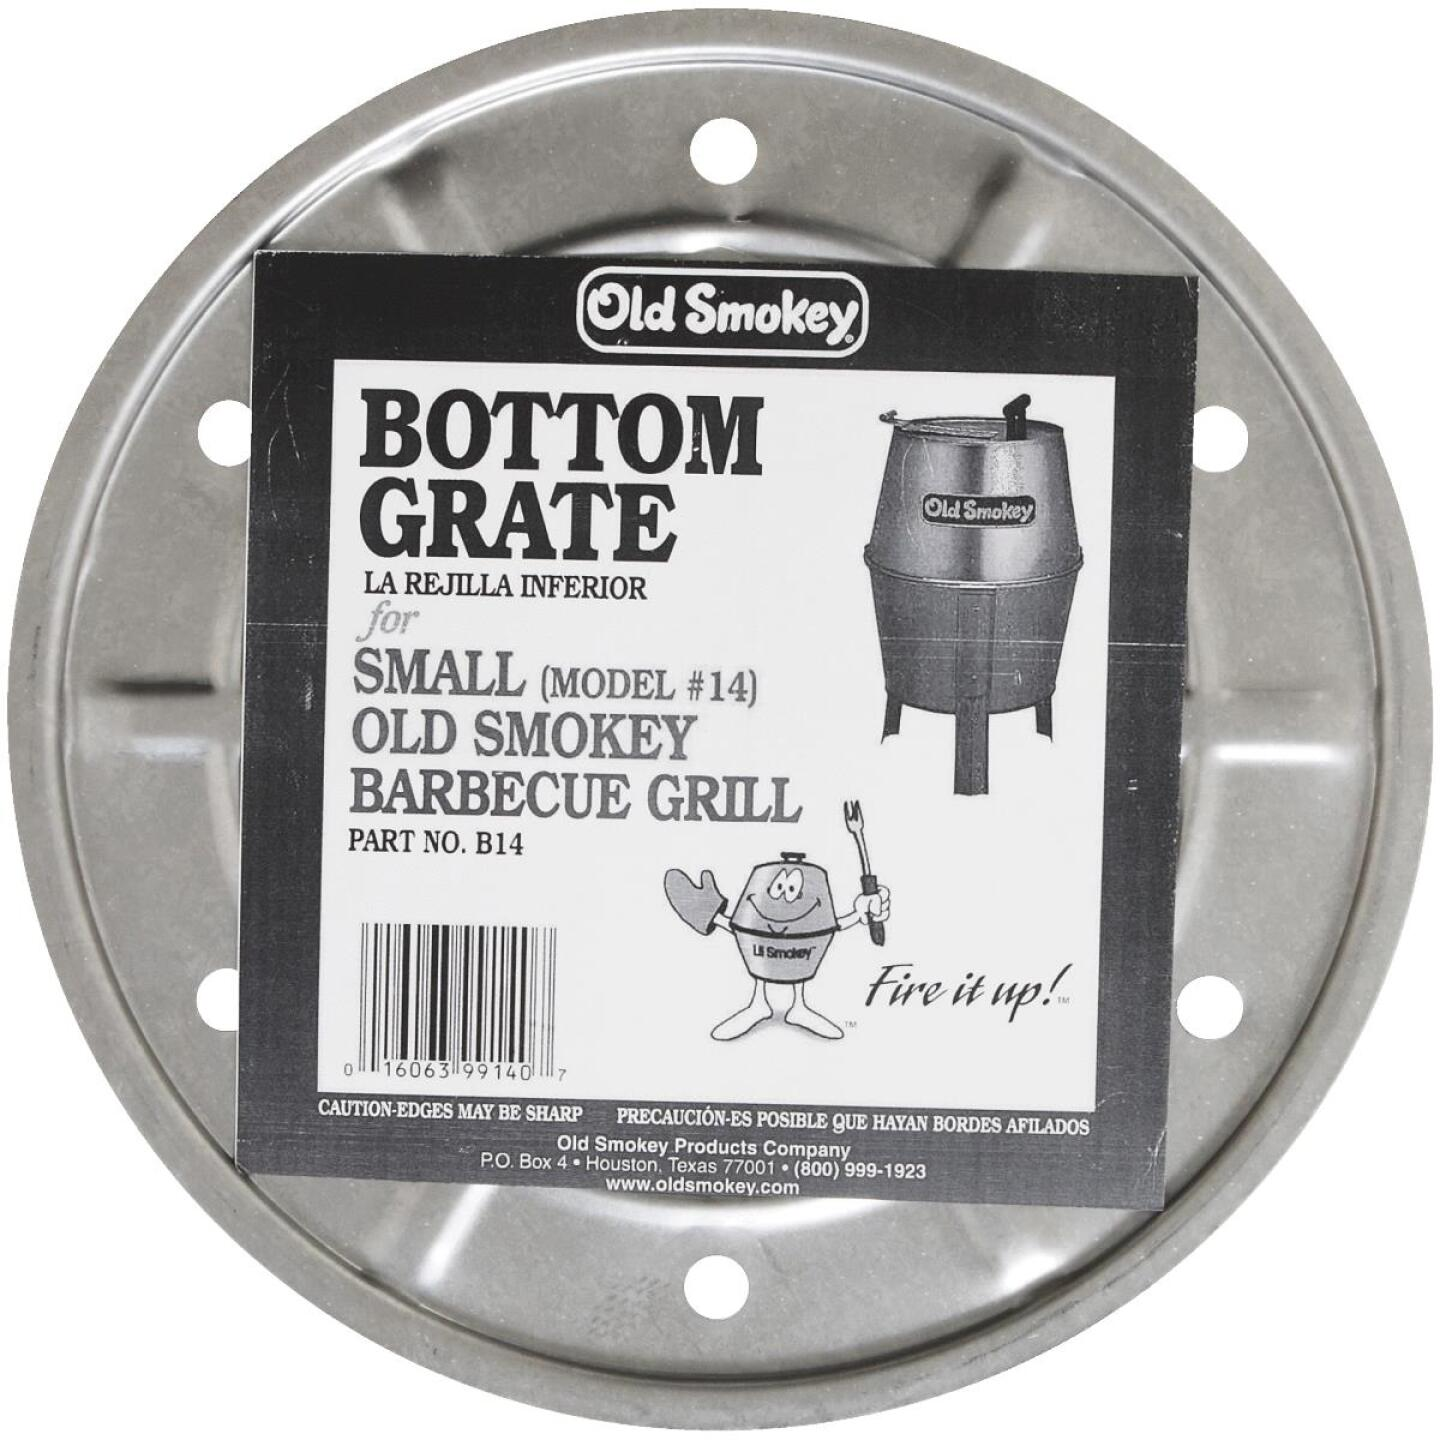 Old Smokey 11.5 In. Dia. Aluminized Steel Bottom Grill Grate Image 2